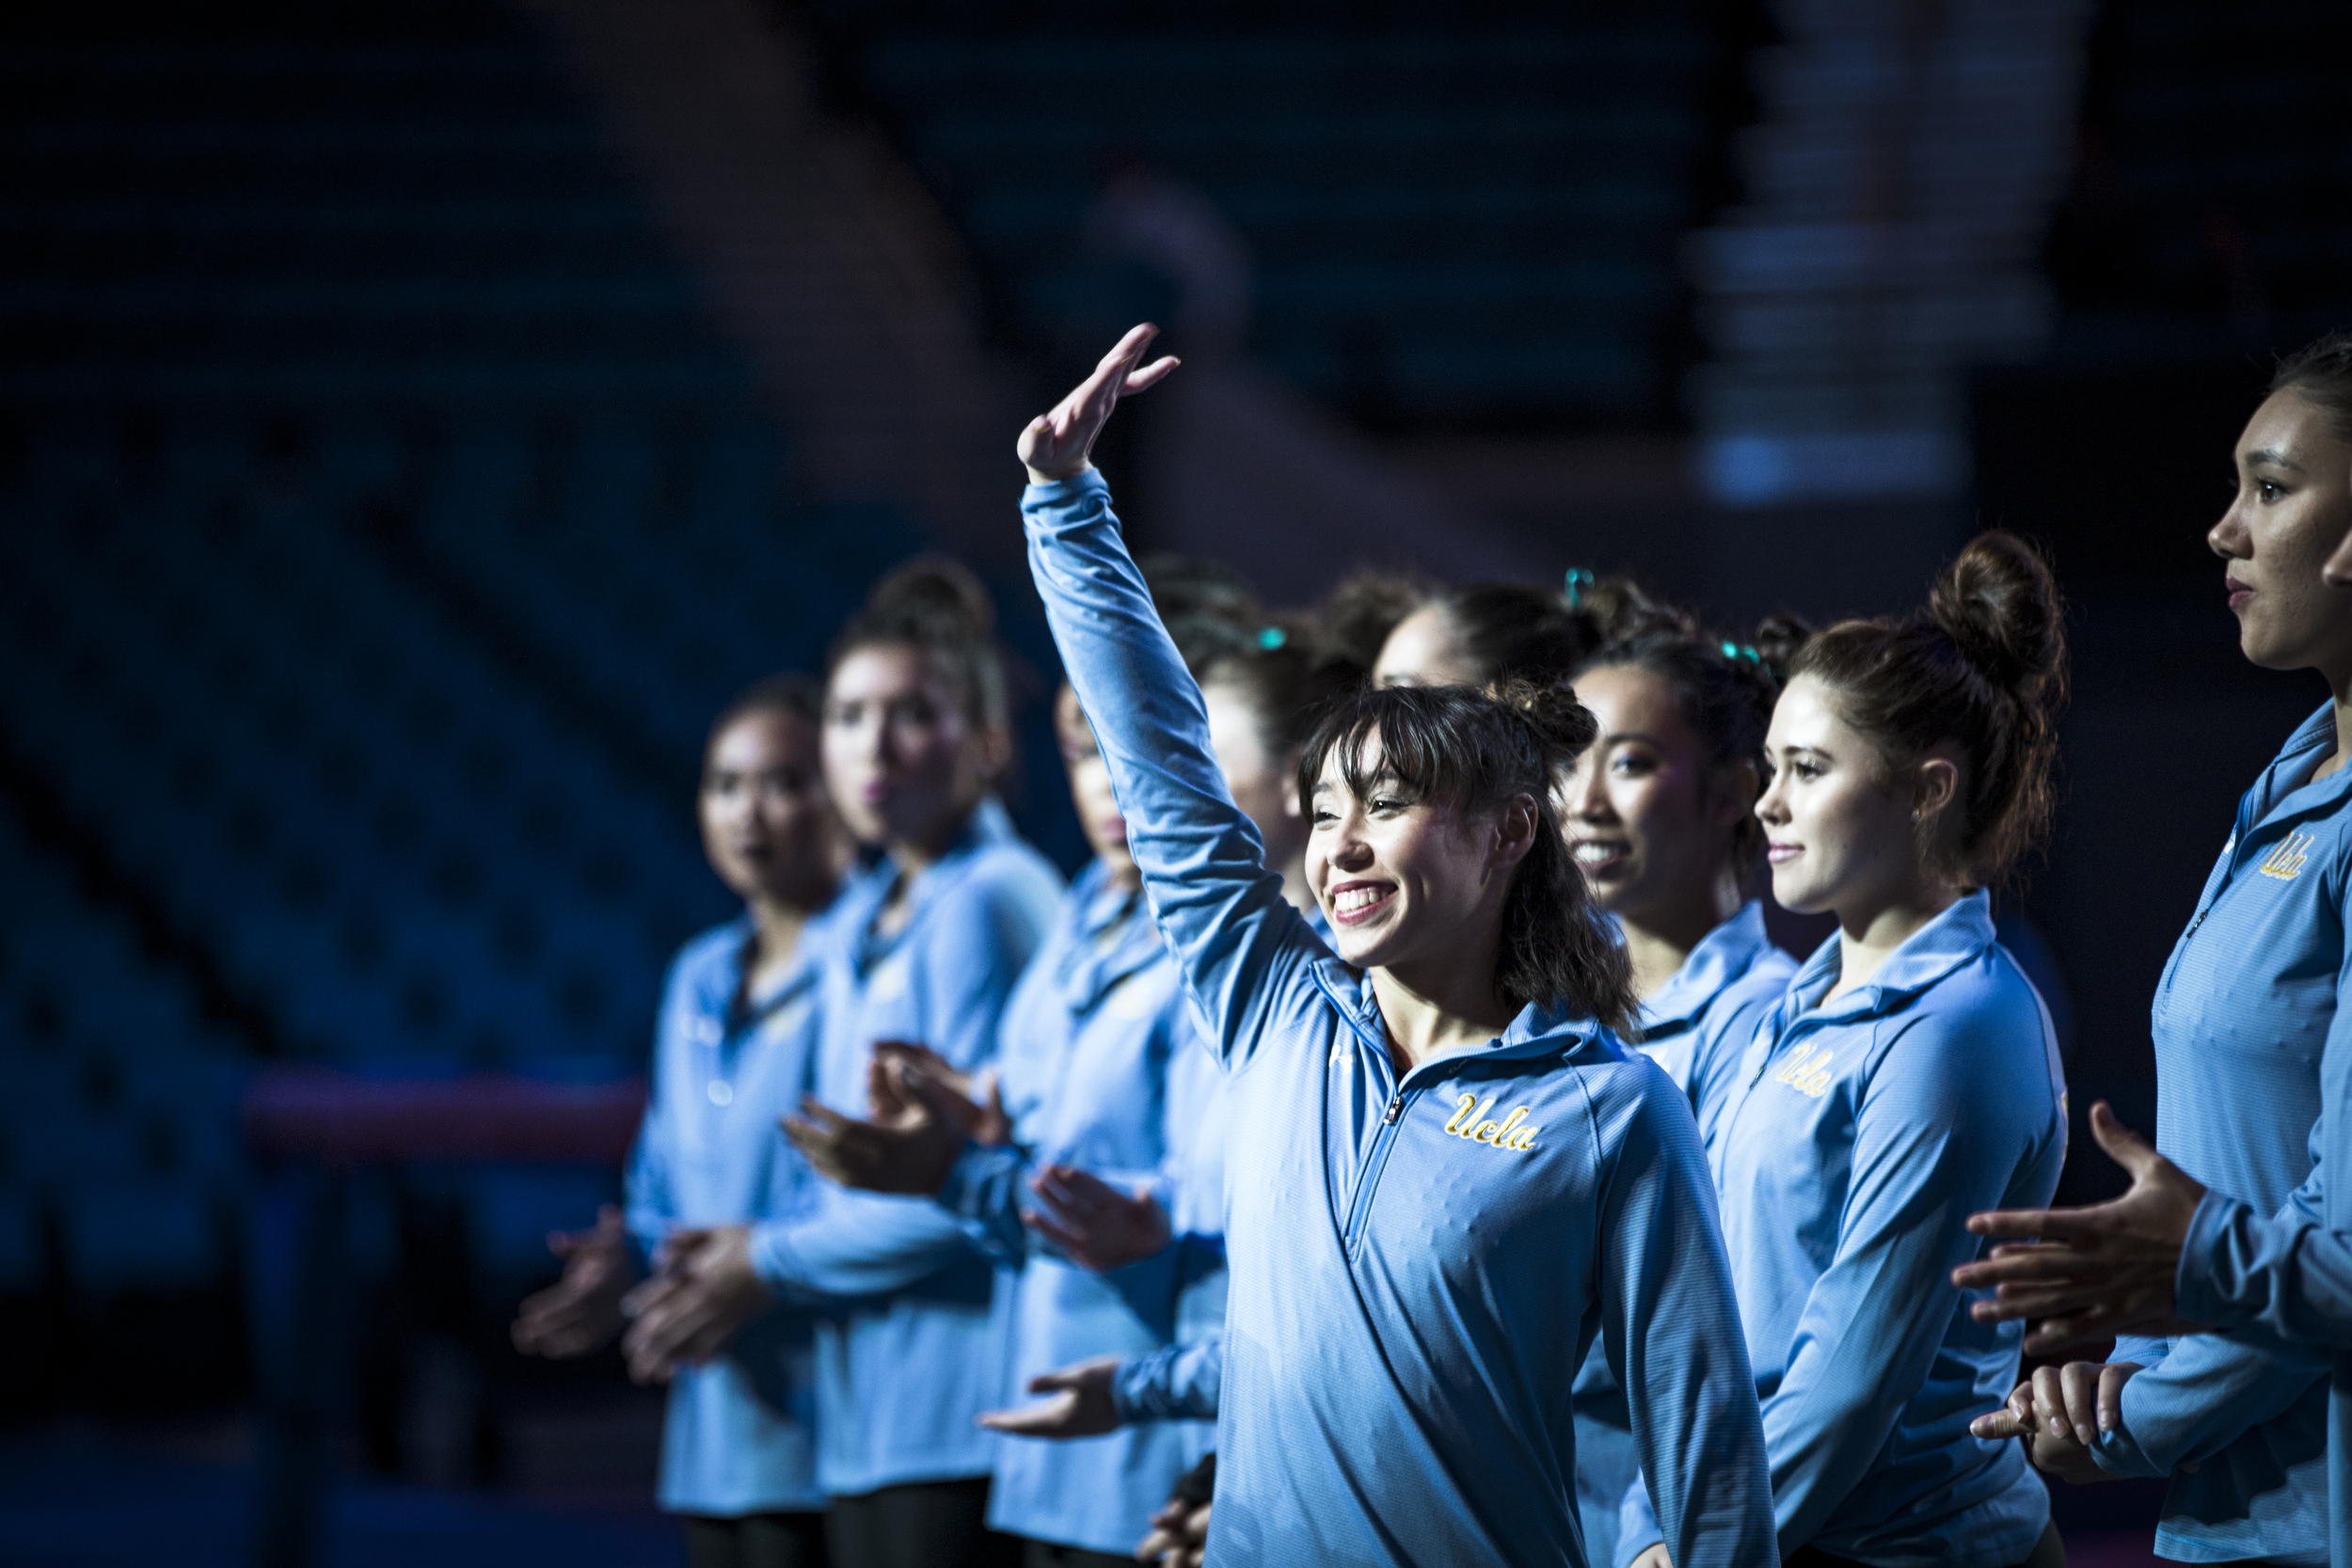 Gymnastics meet between the UCLA Bruins and San Jose State Spartans at Pauley Pavilion in Los Angeles, Calif. on March 13, 2018. (Photo by Megan McNally/The Players' Tribune)